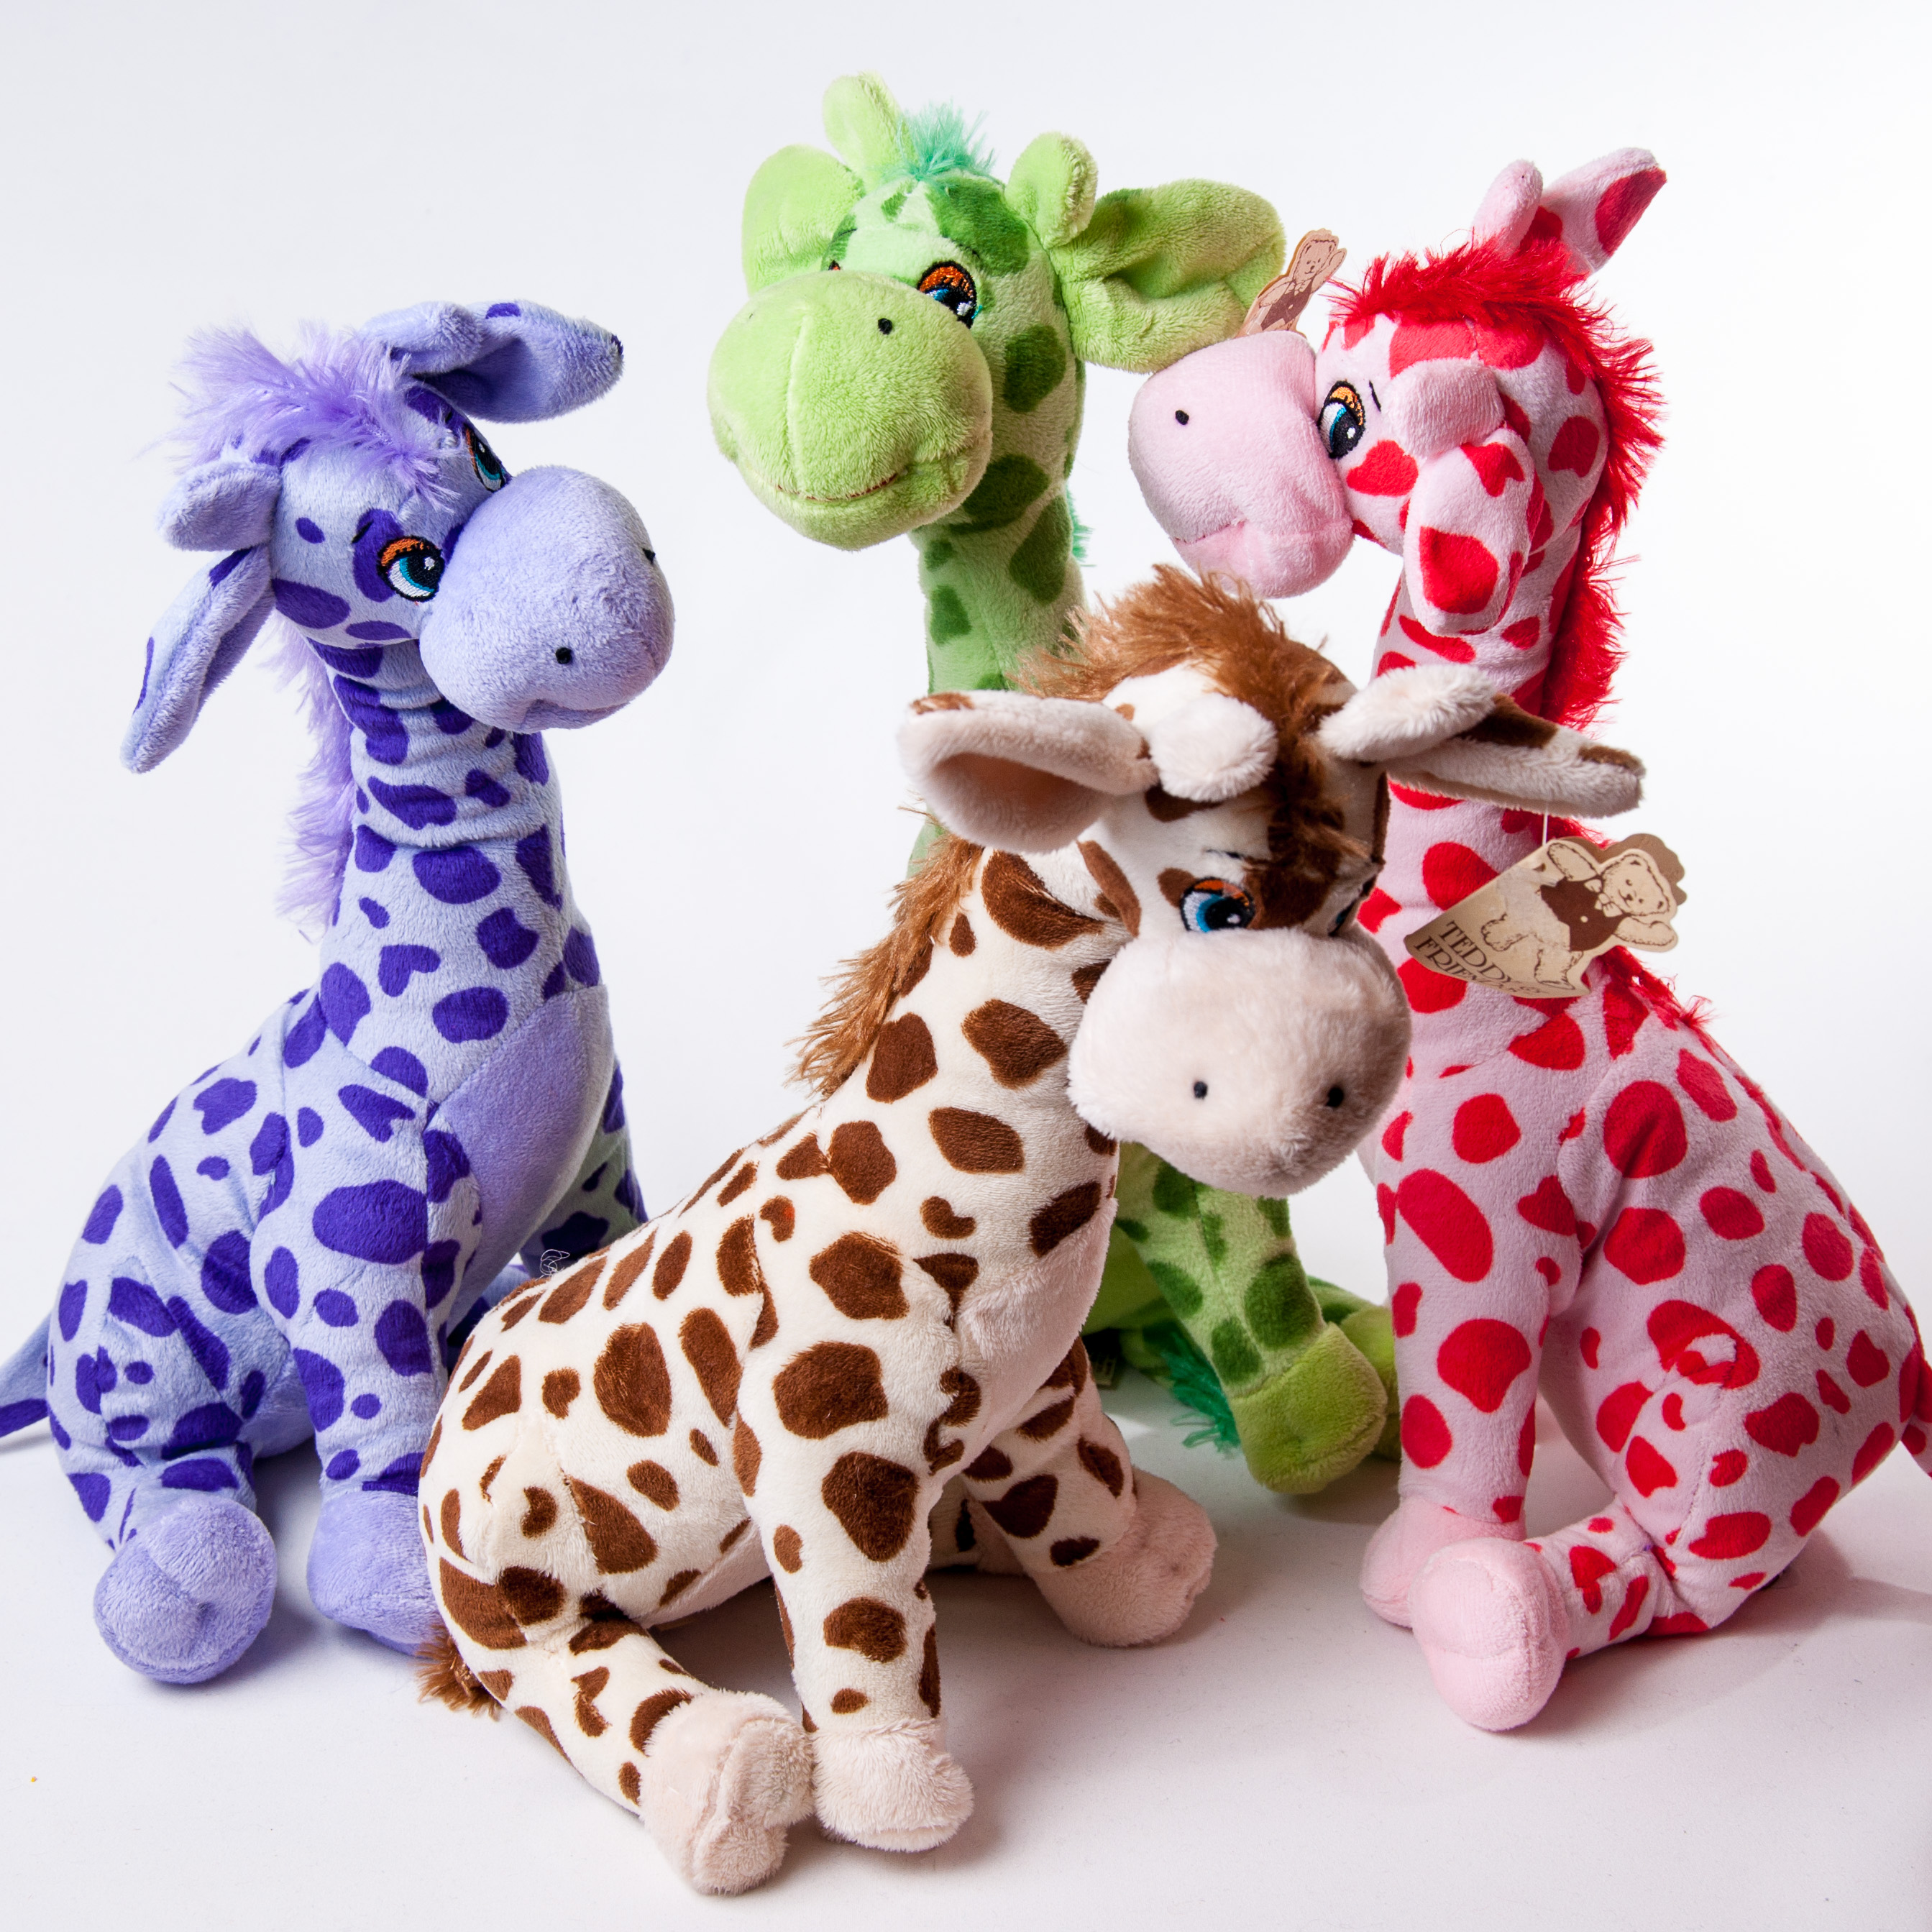 Toy Giraffes Various Colors - Teddies - Flowers R Us